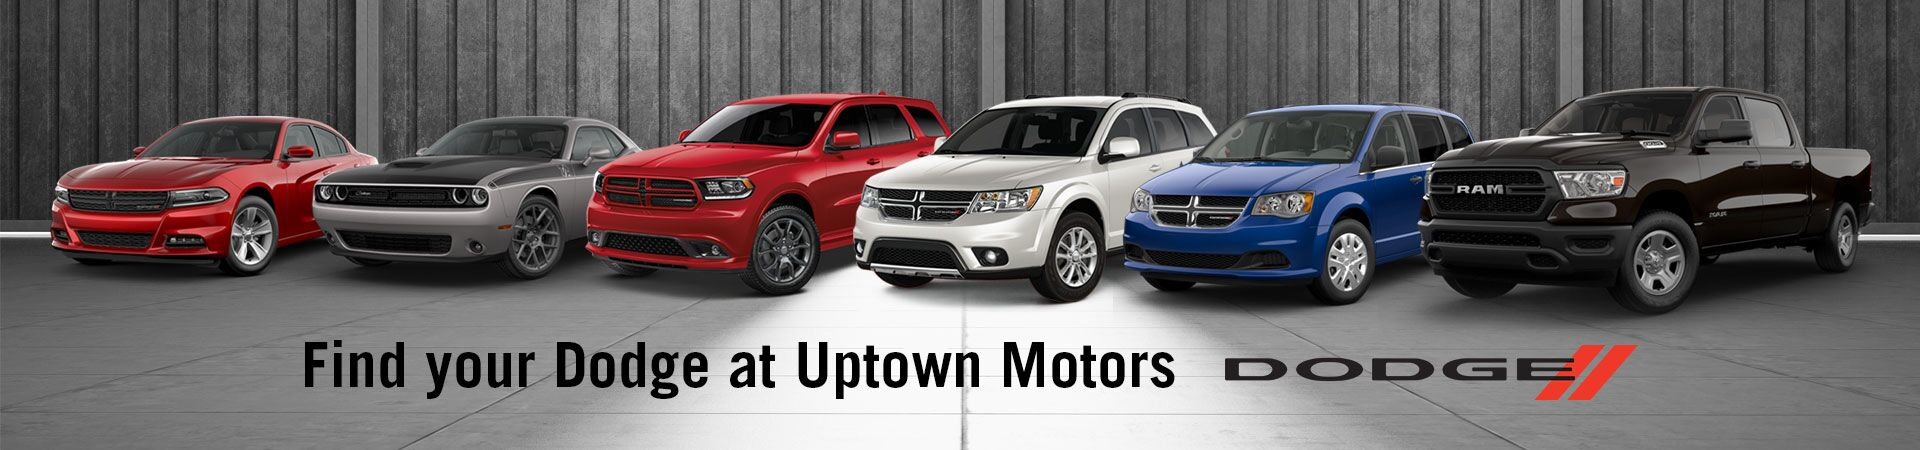 Find Your Dodge Here at Uptown Motors